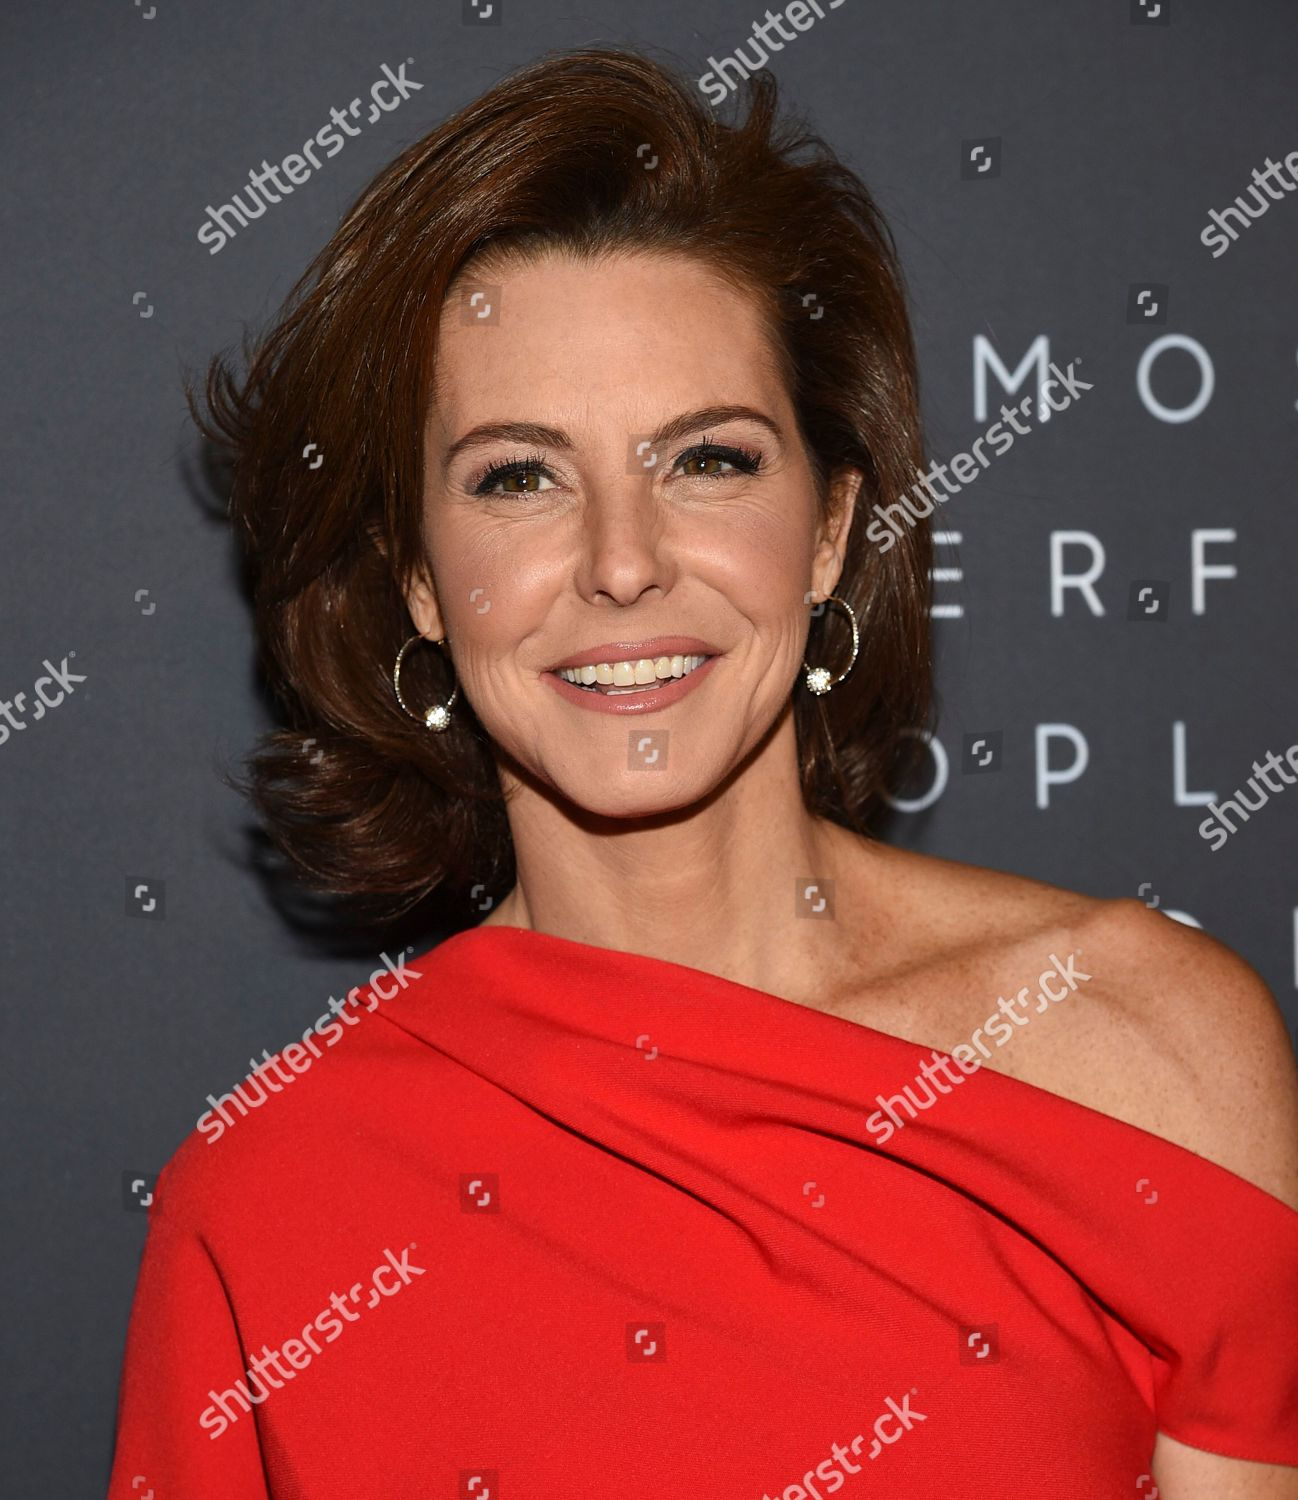 MSNBC news anchor Stephanie Ruhle attends Hollywood